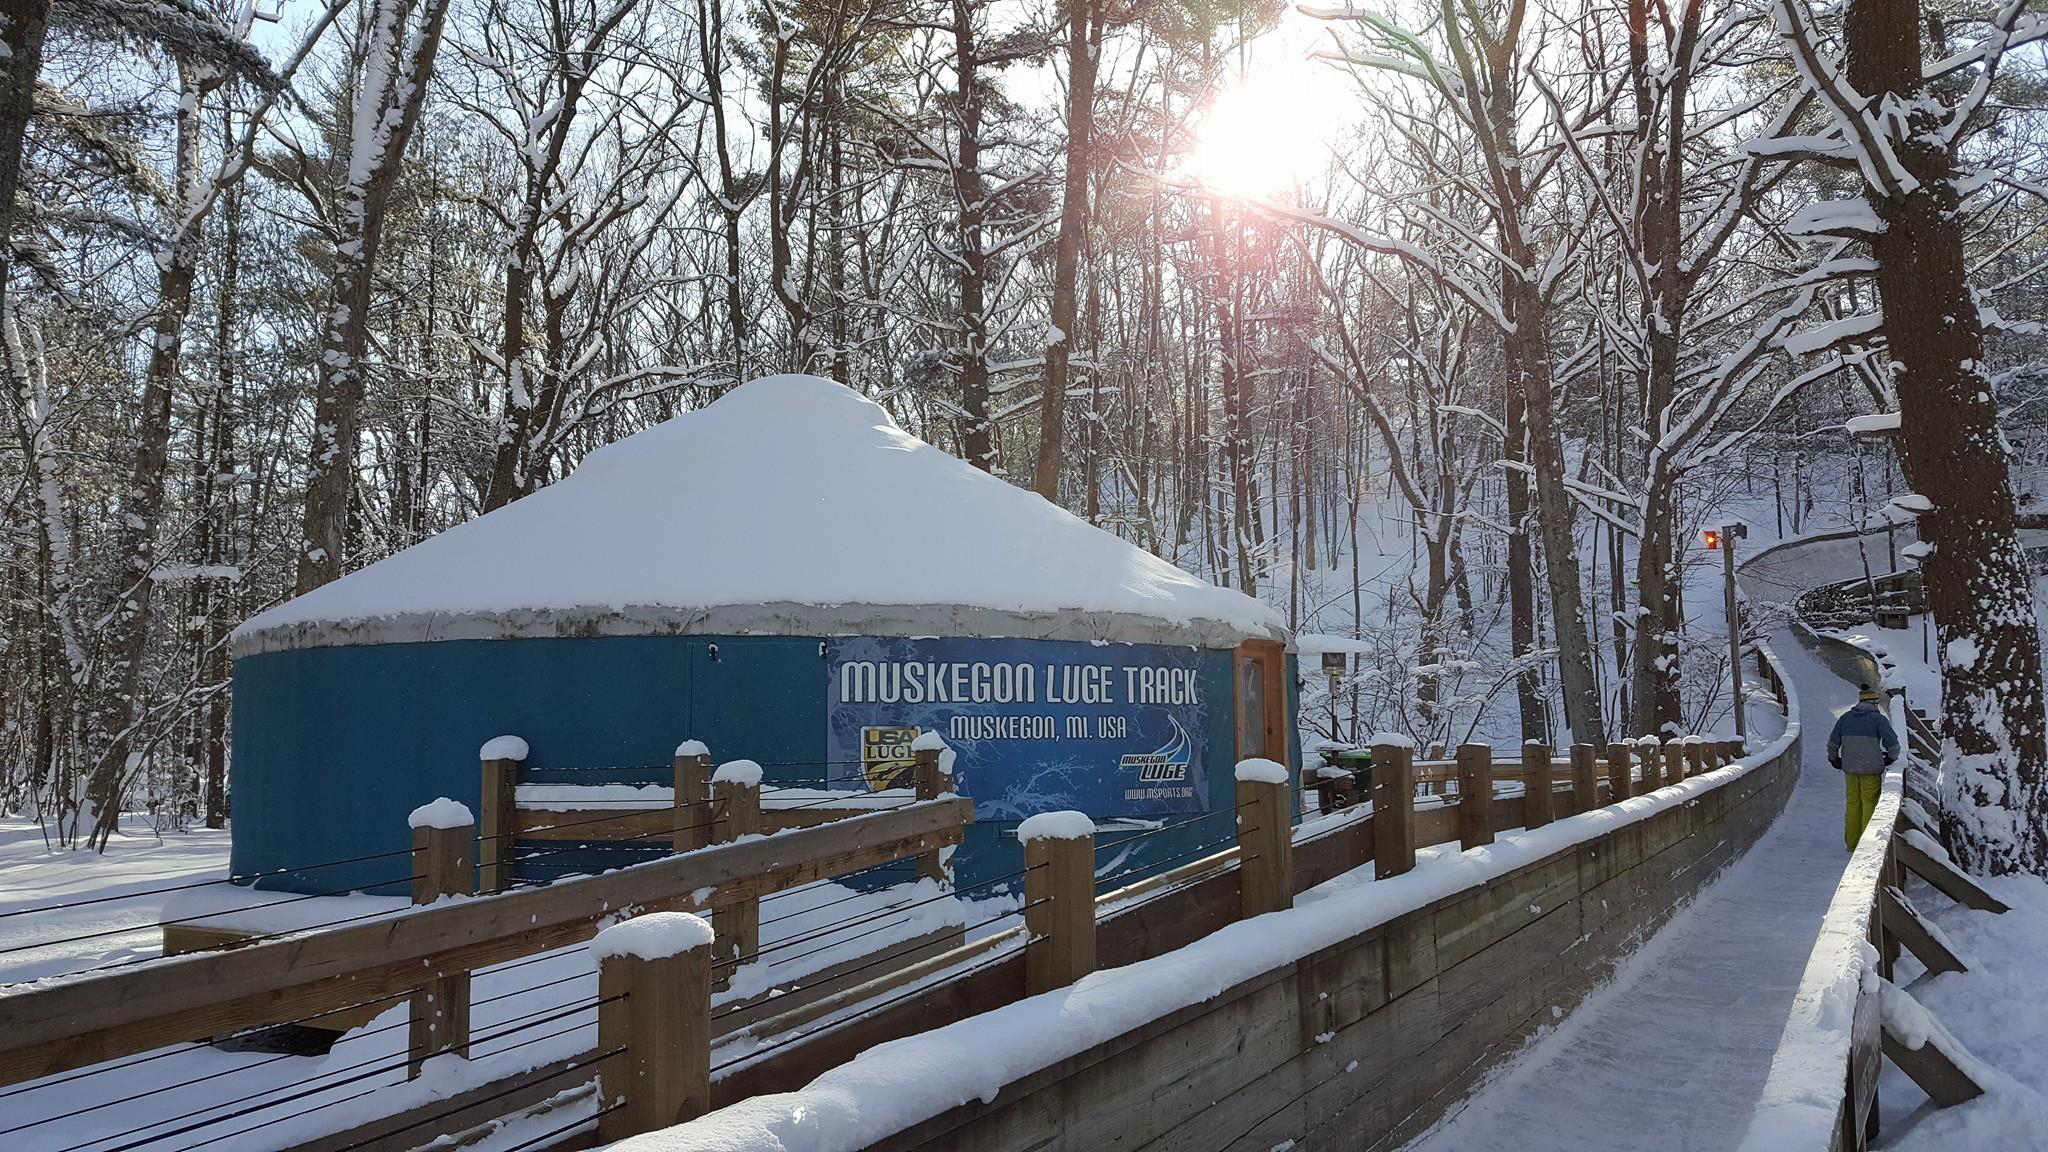 Muskegon Winter Sports Complex has one of the only luge tracks open to the public in the U.S.